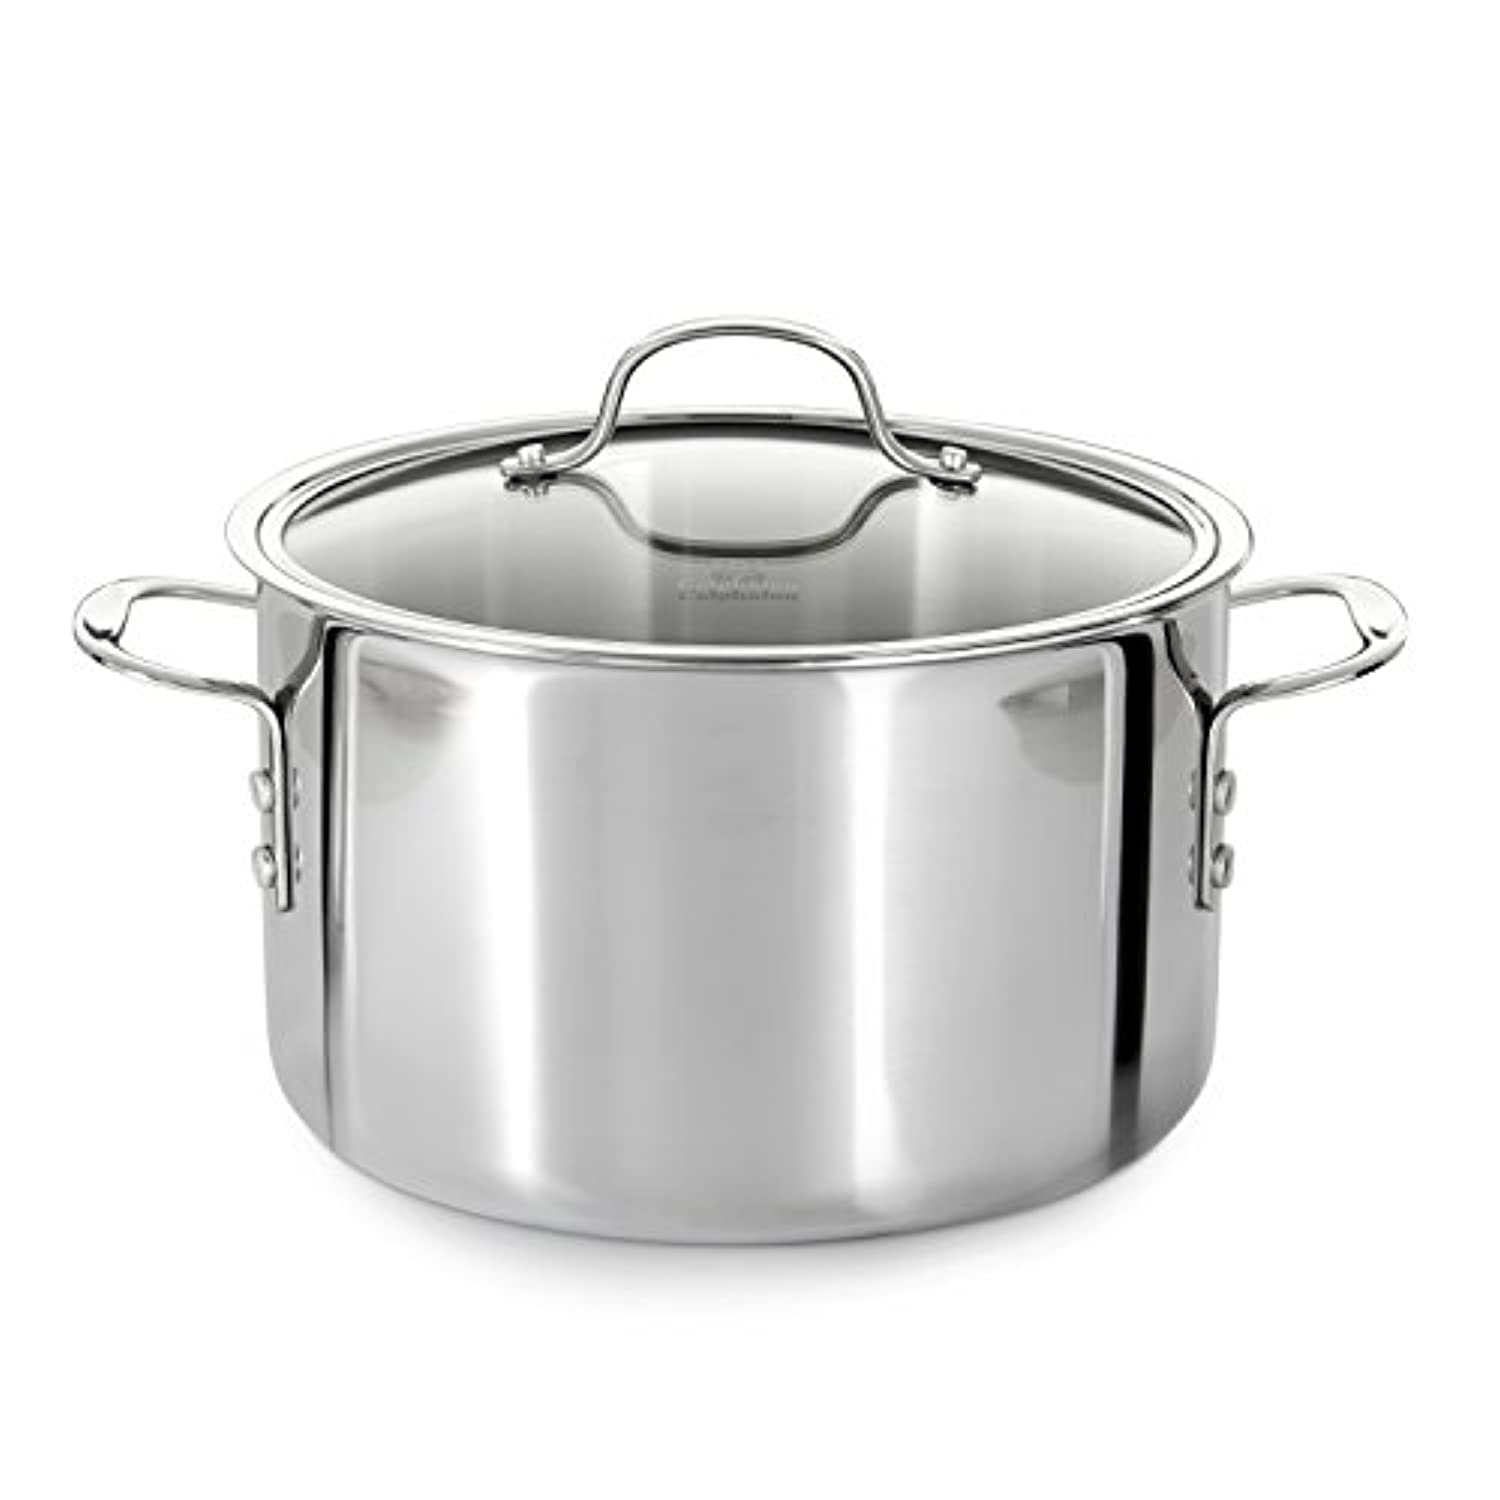 Calphalon Tri-Ply Stainless Steel 8-Quart Stock Pot with Cover by Calphalon